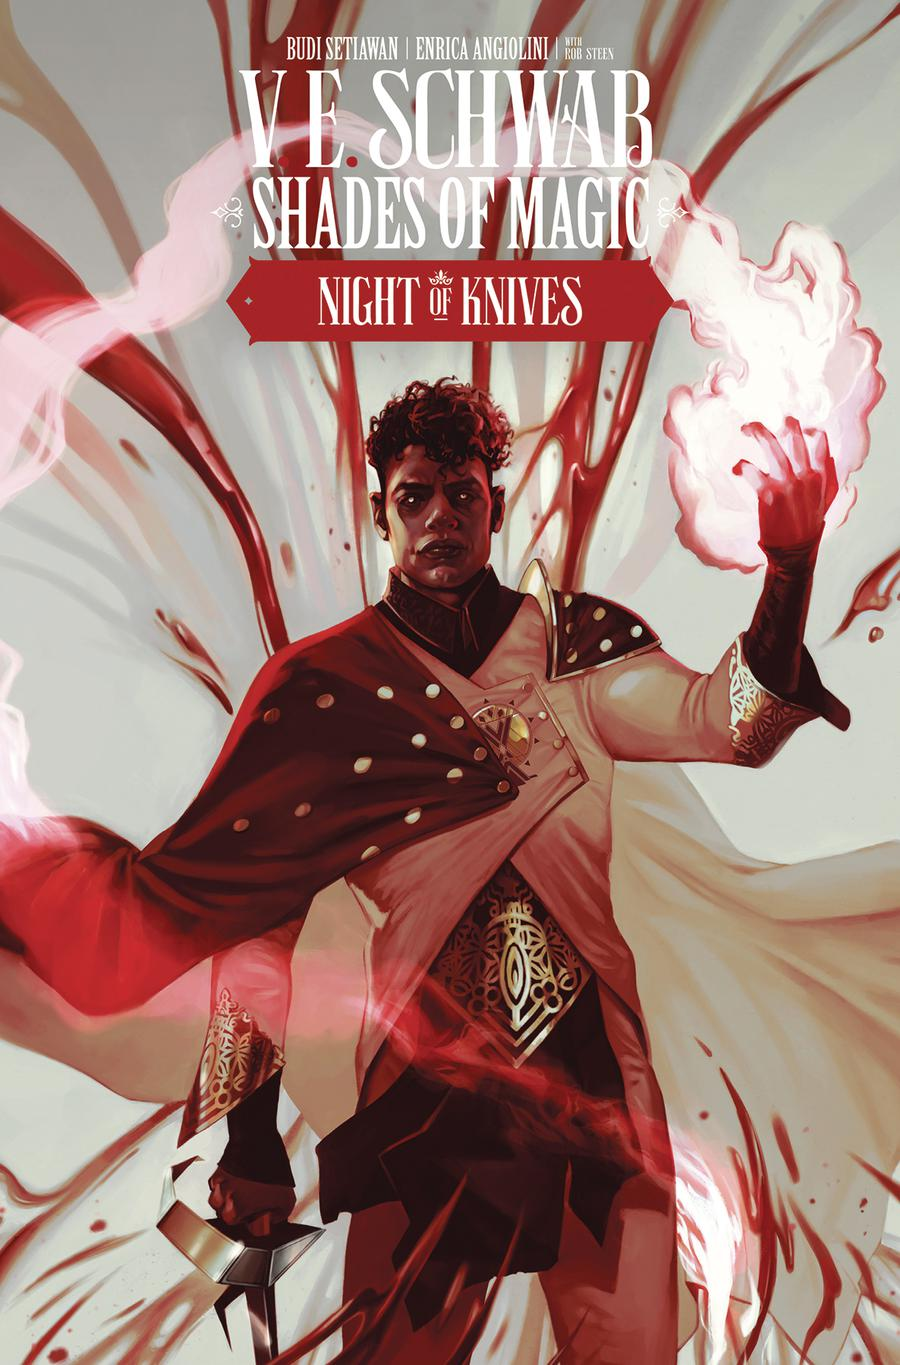 Shades Of Magic #8 Night Of Knives Cover A Regular Claudia Caranfa Cover